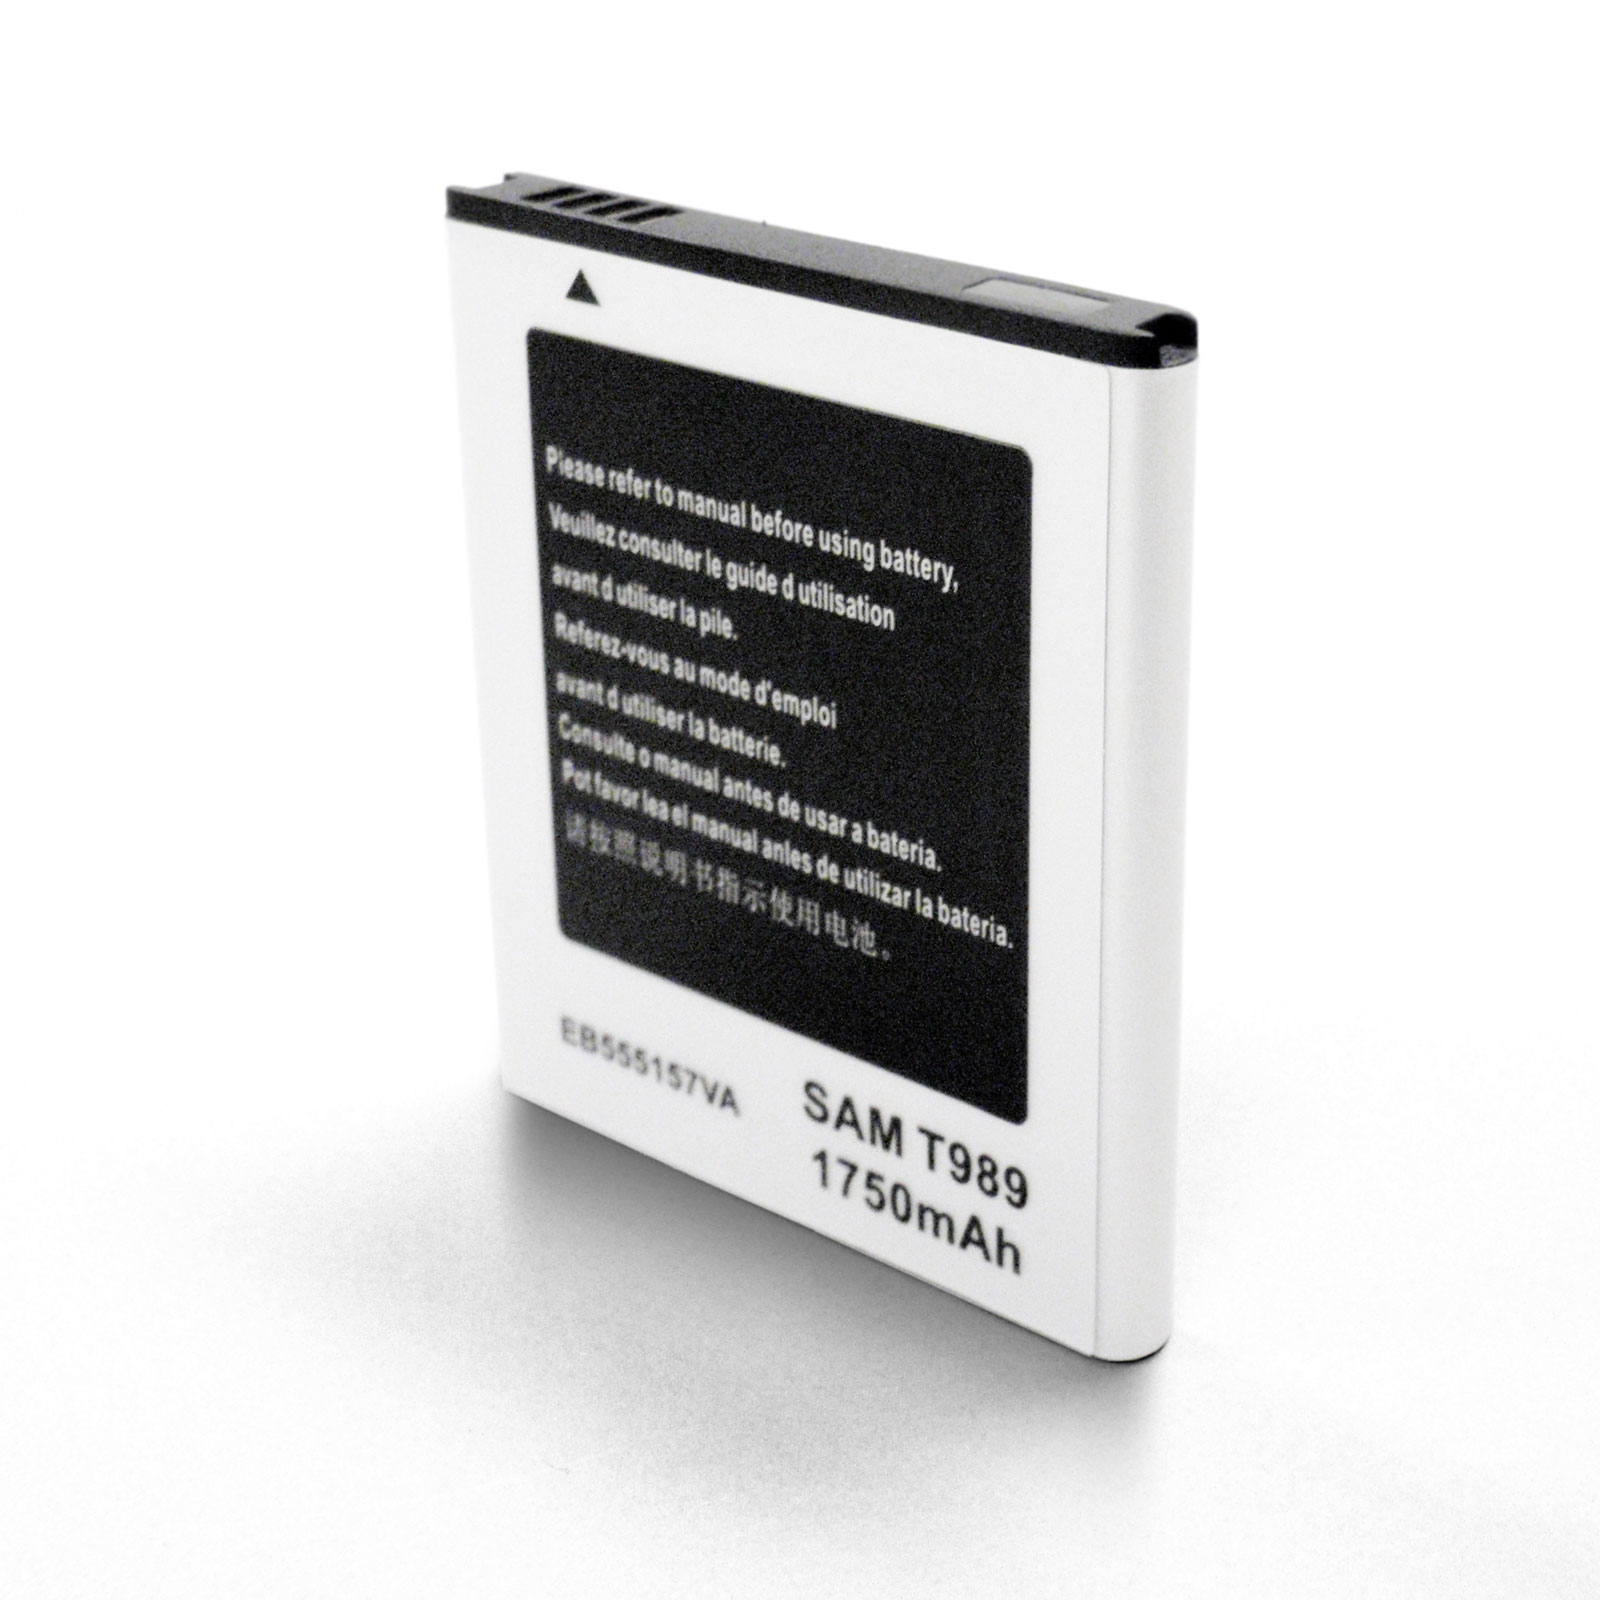 AmeriMax New Battery for Samsung Galaxy S II S2 i9210 At&t Skyrocket SGH-i727 EB-L1D7IBA Rugby Pro SGH-i547 SGH-i547C EB-L1F2HBU at Sears.com